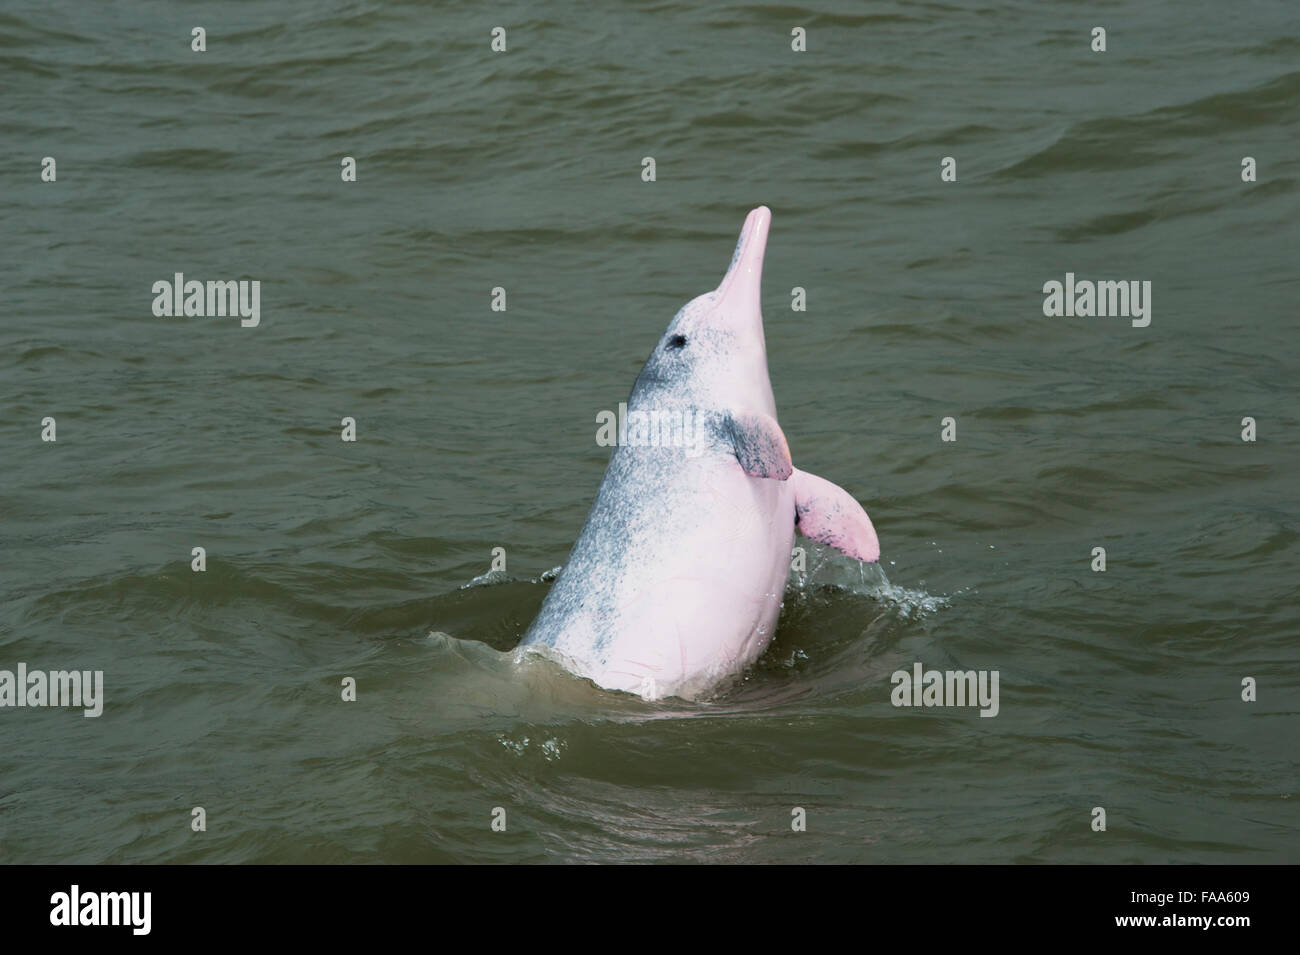 Female Indo-Pacific Humpback Dolphin (Sousa chinensis), breaching. Hong Kong, Pearl River Delta. - Stock Image